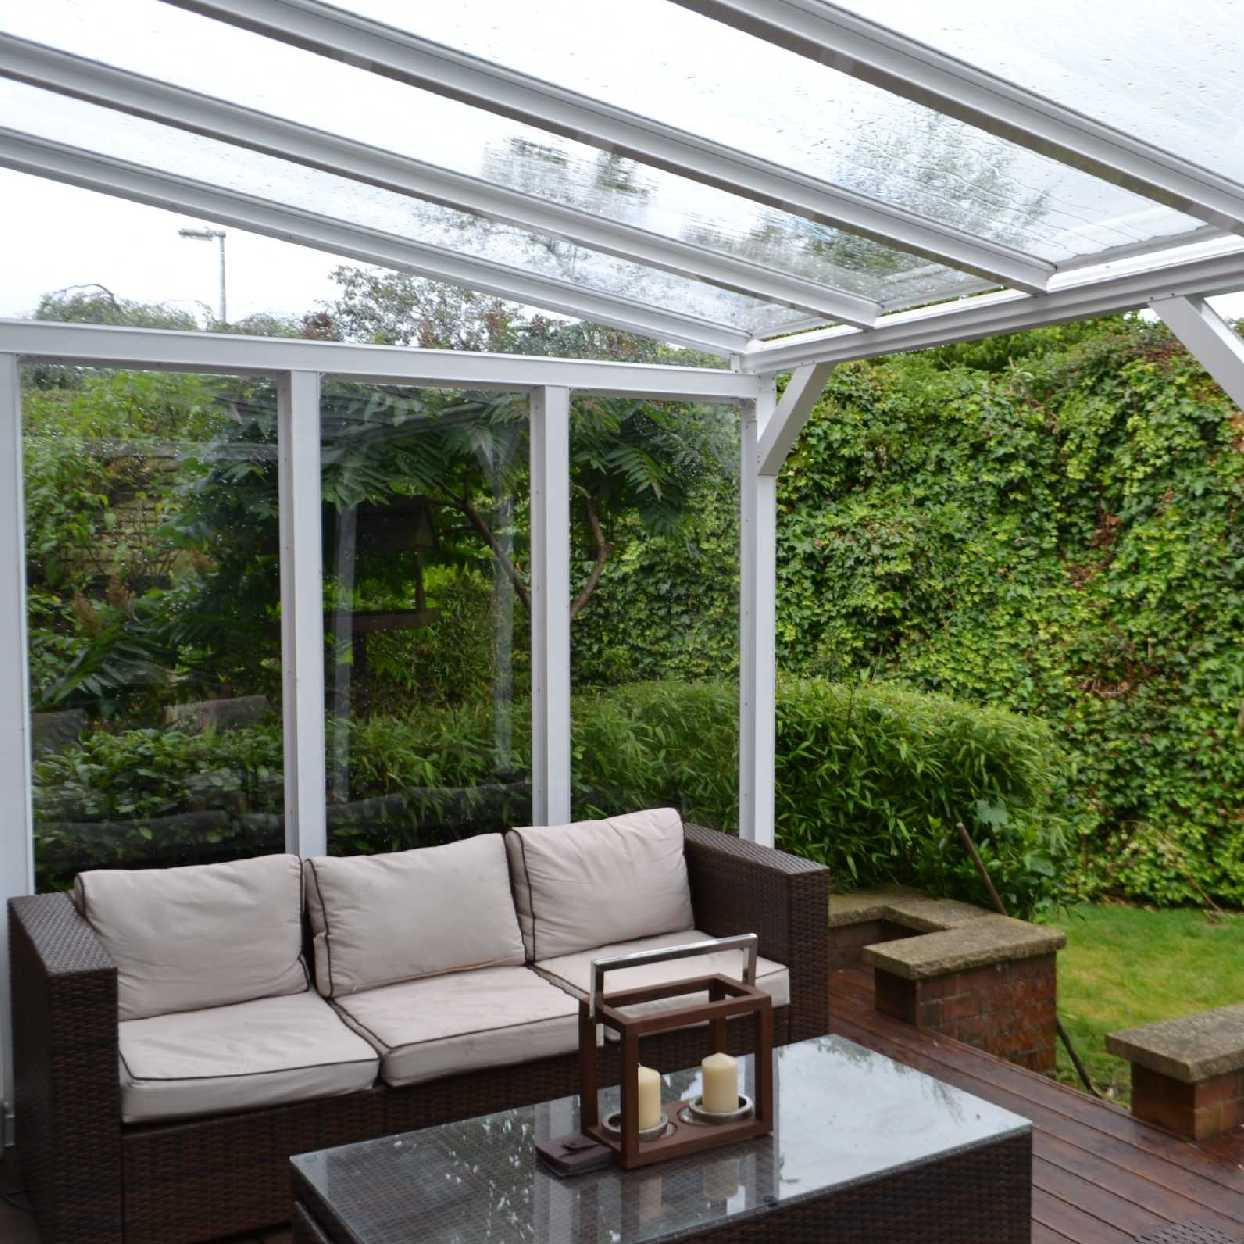 Omega Smart Lean-To Canopy UNGLAZED for 6mm Glazing - 5.6m (W) x 2.5m (P), (3) Supporting Posts